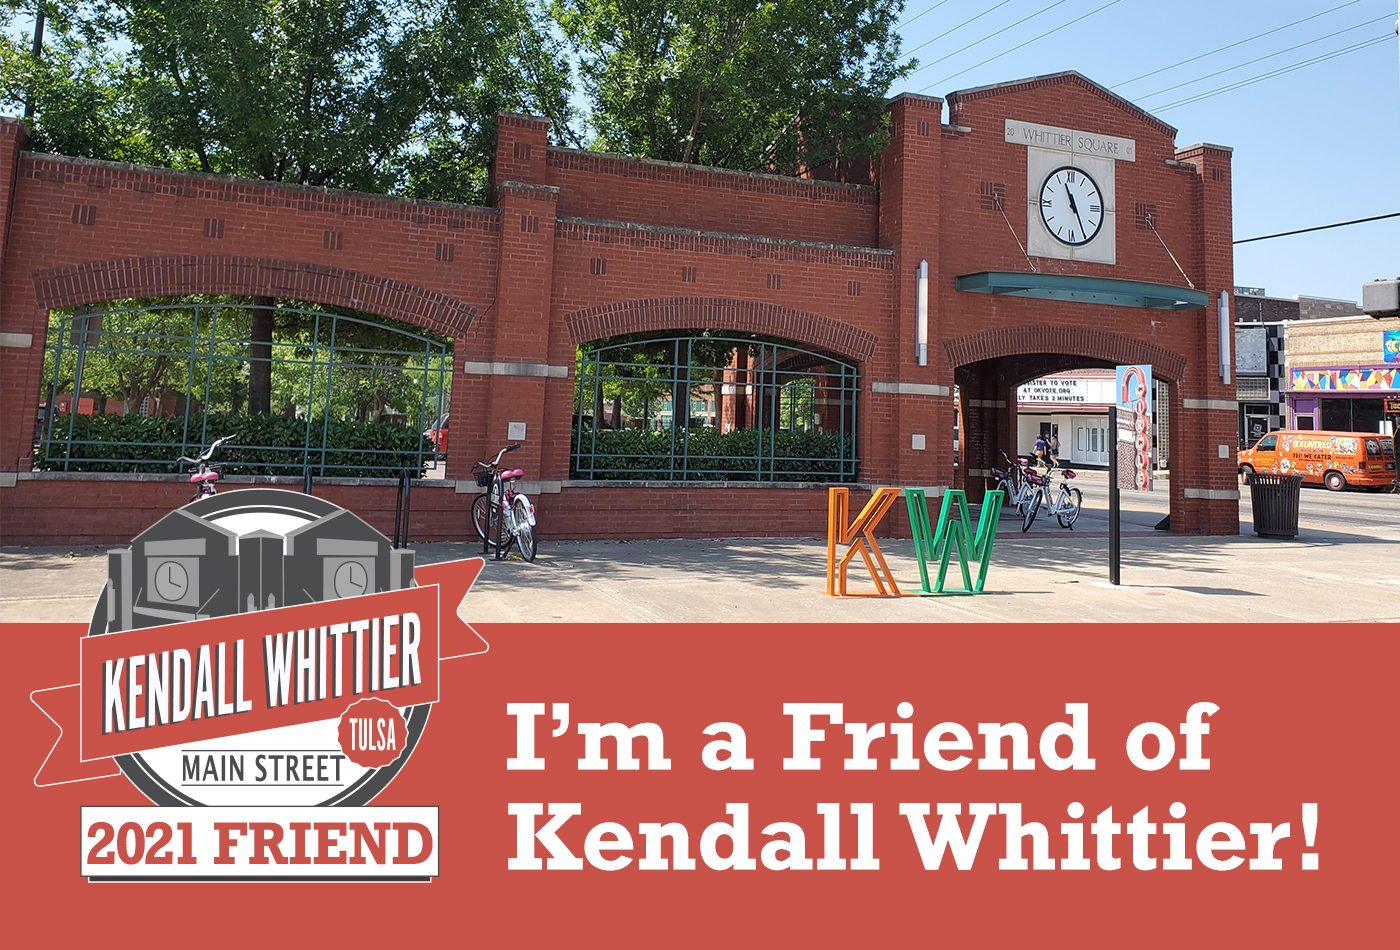 Kendall Whittier is looking for Friends